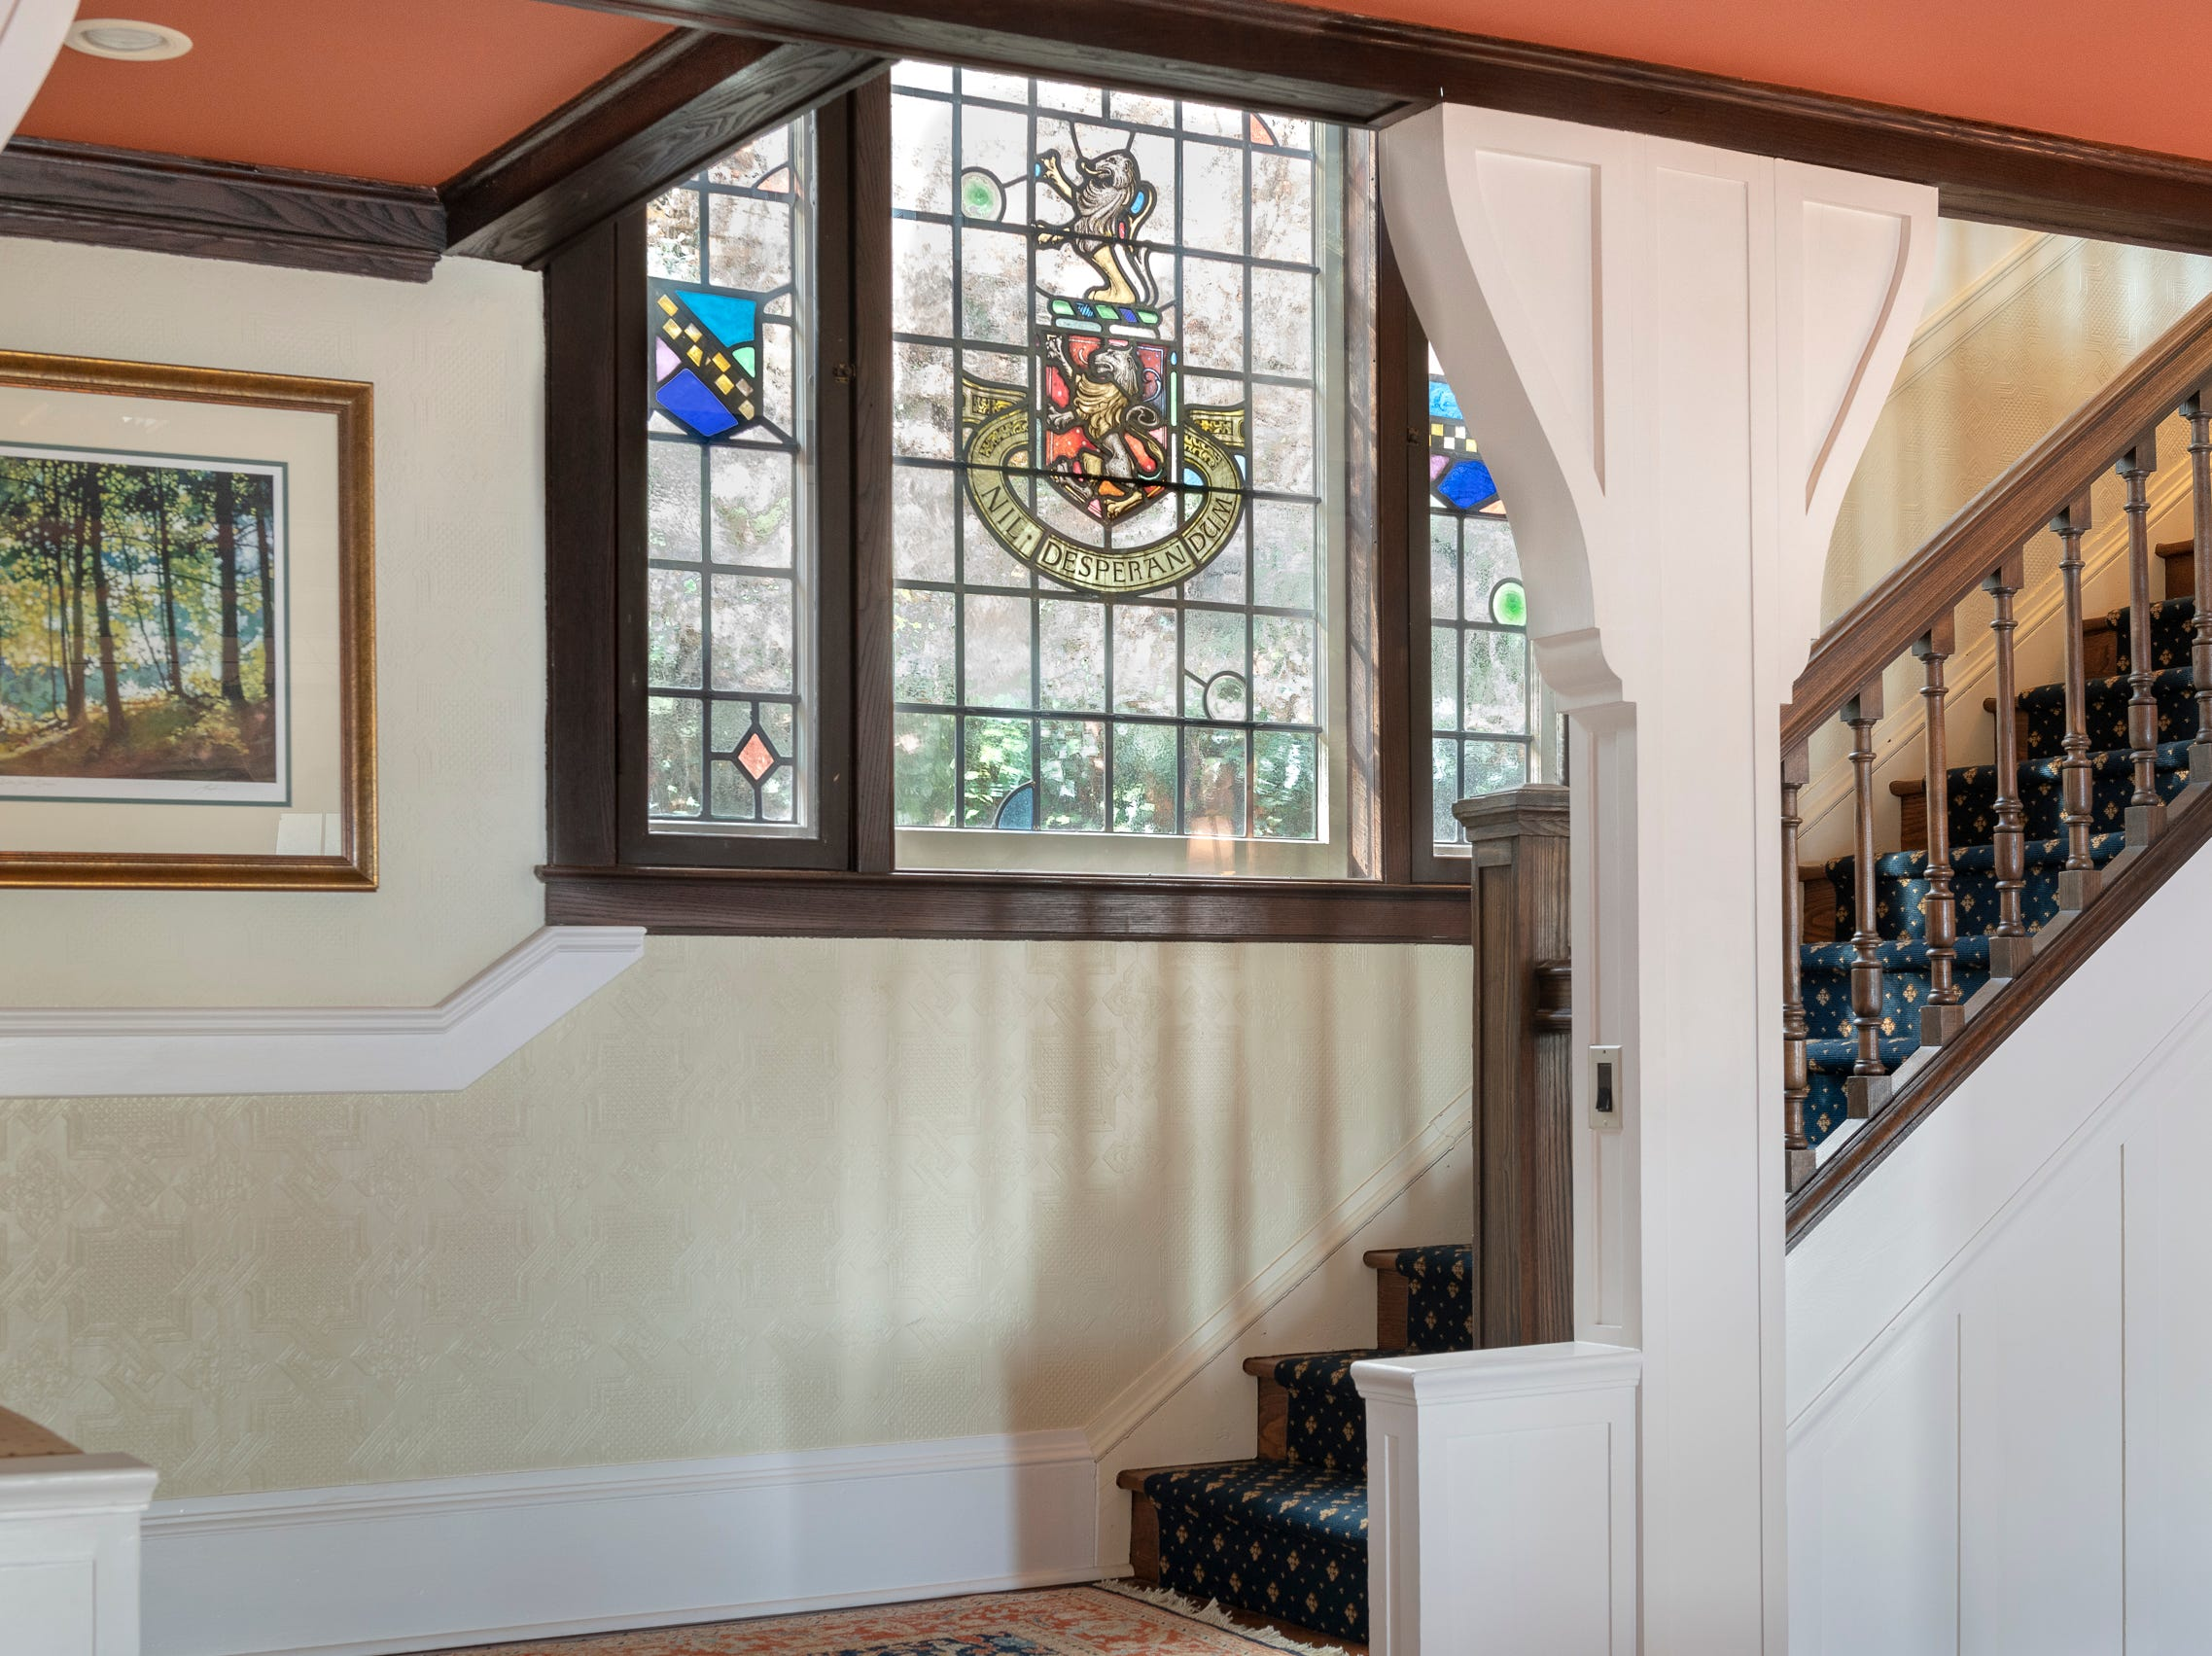 The formal entry staircase has original stained glass panels.